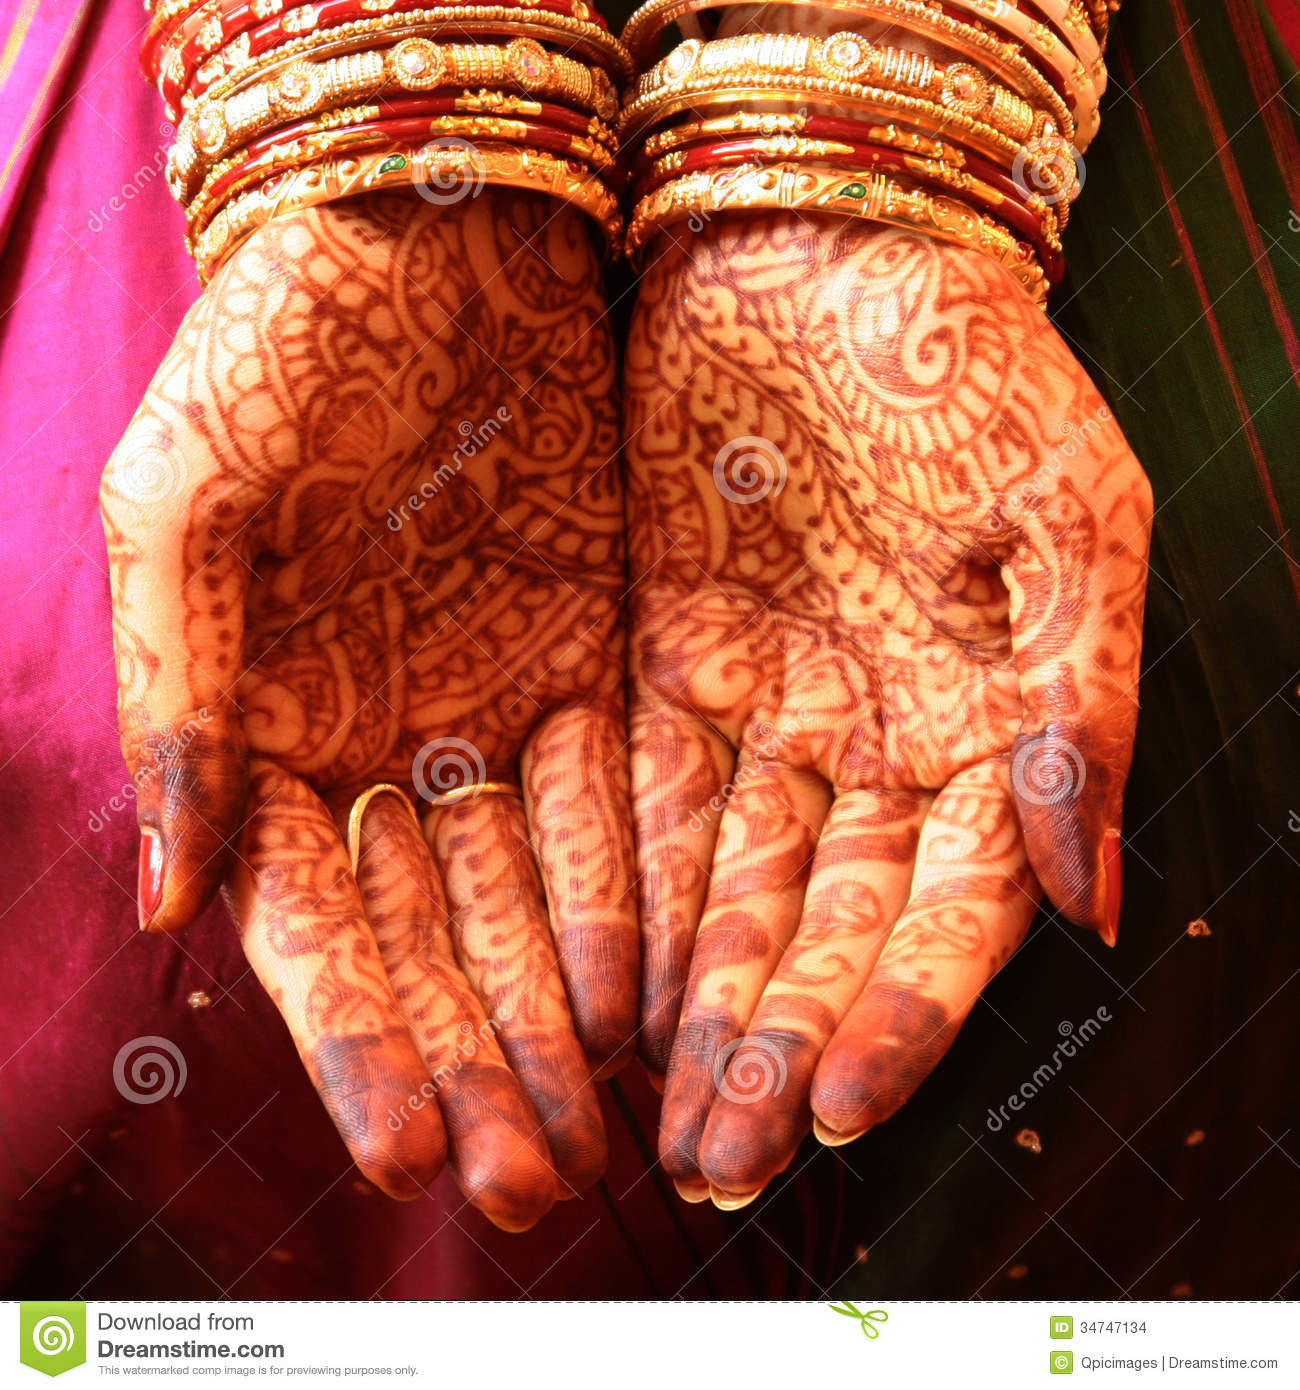 Henna Hands and Bangles stock photo. Image of bride, makeup - 34747134